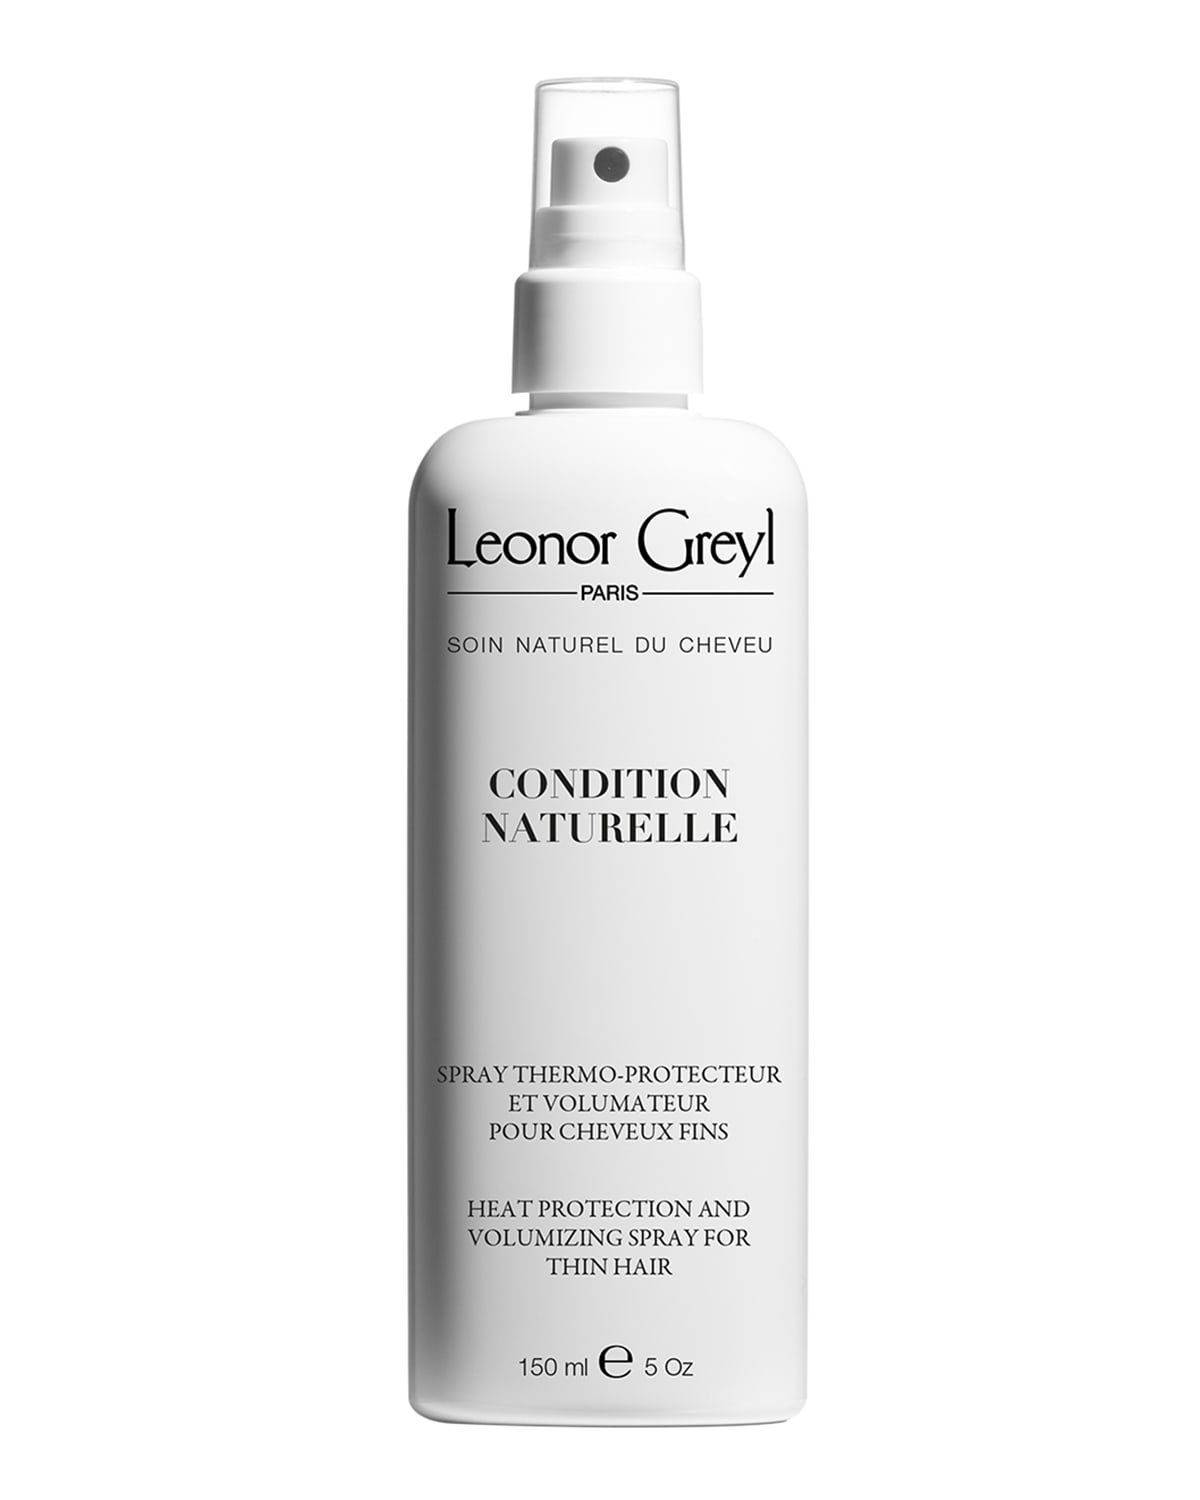 Condition Naturelle (Heat Protecting Volumizing Styling Spray for Thin Hair)